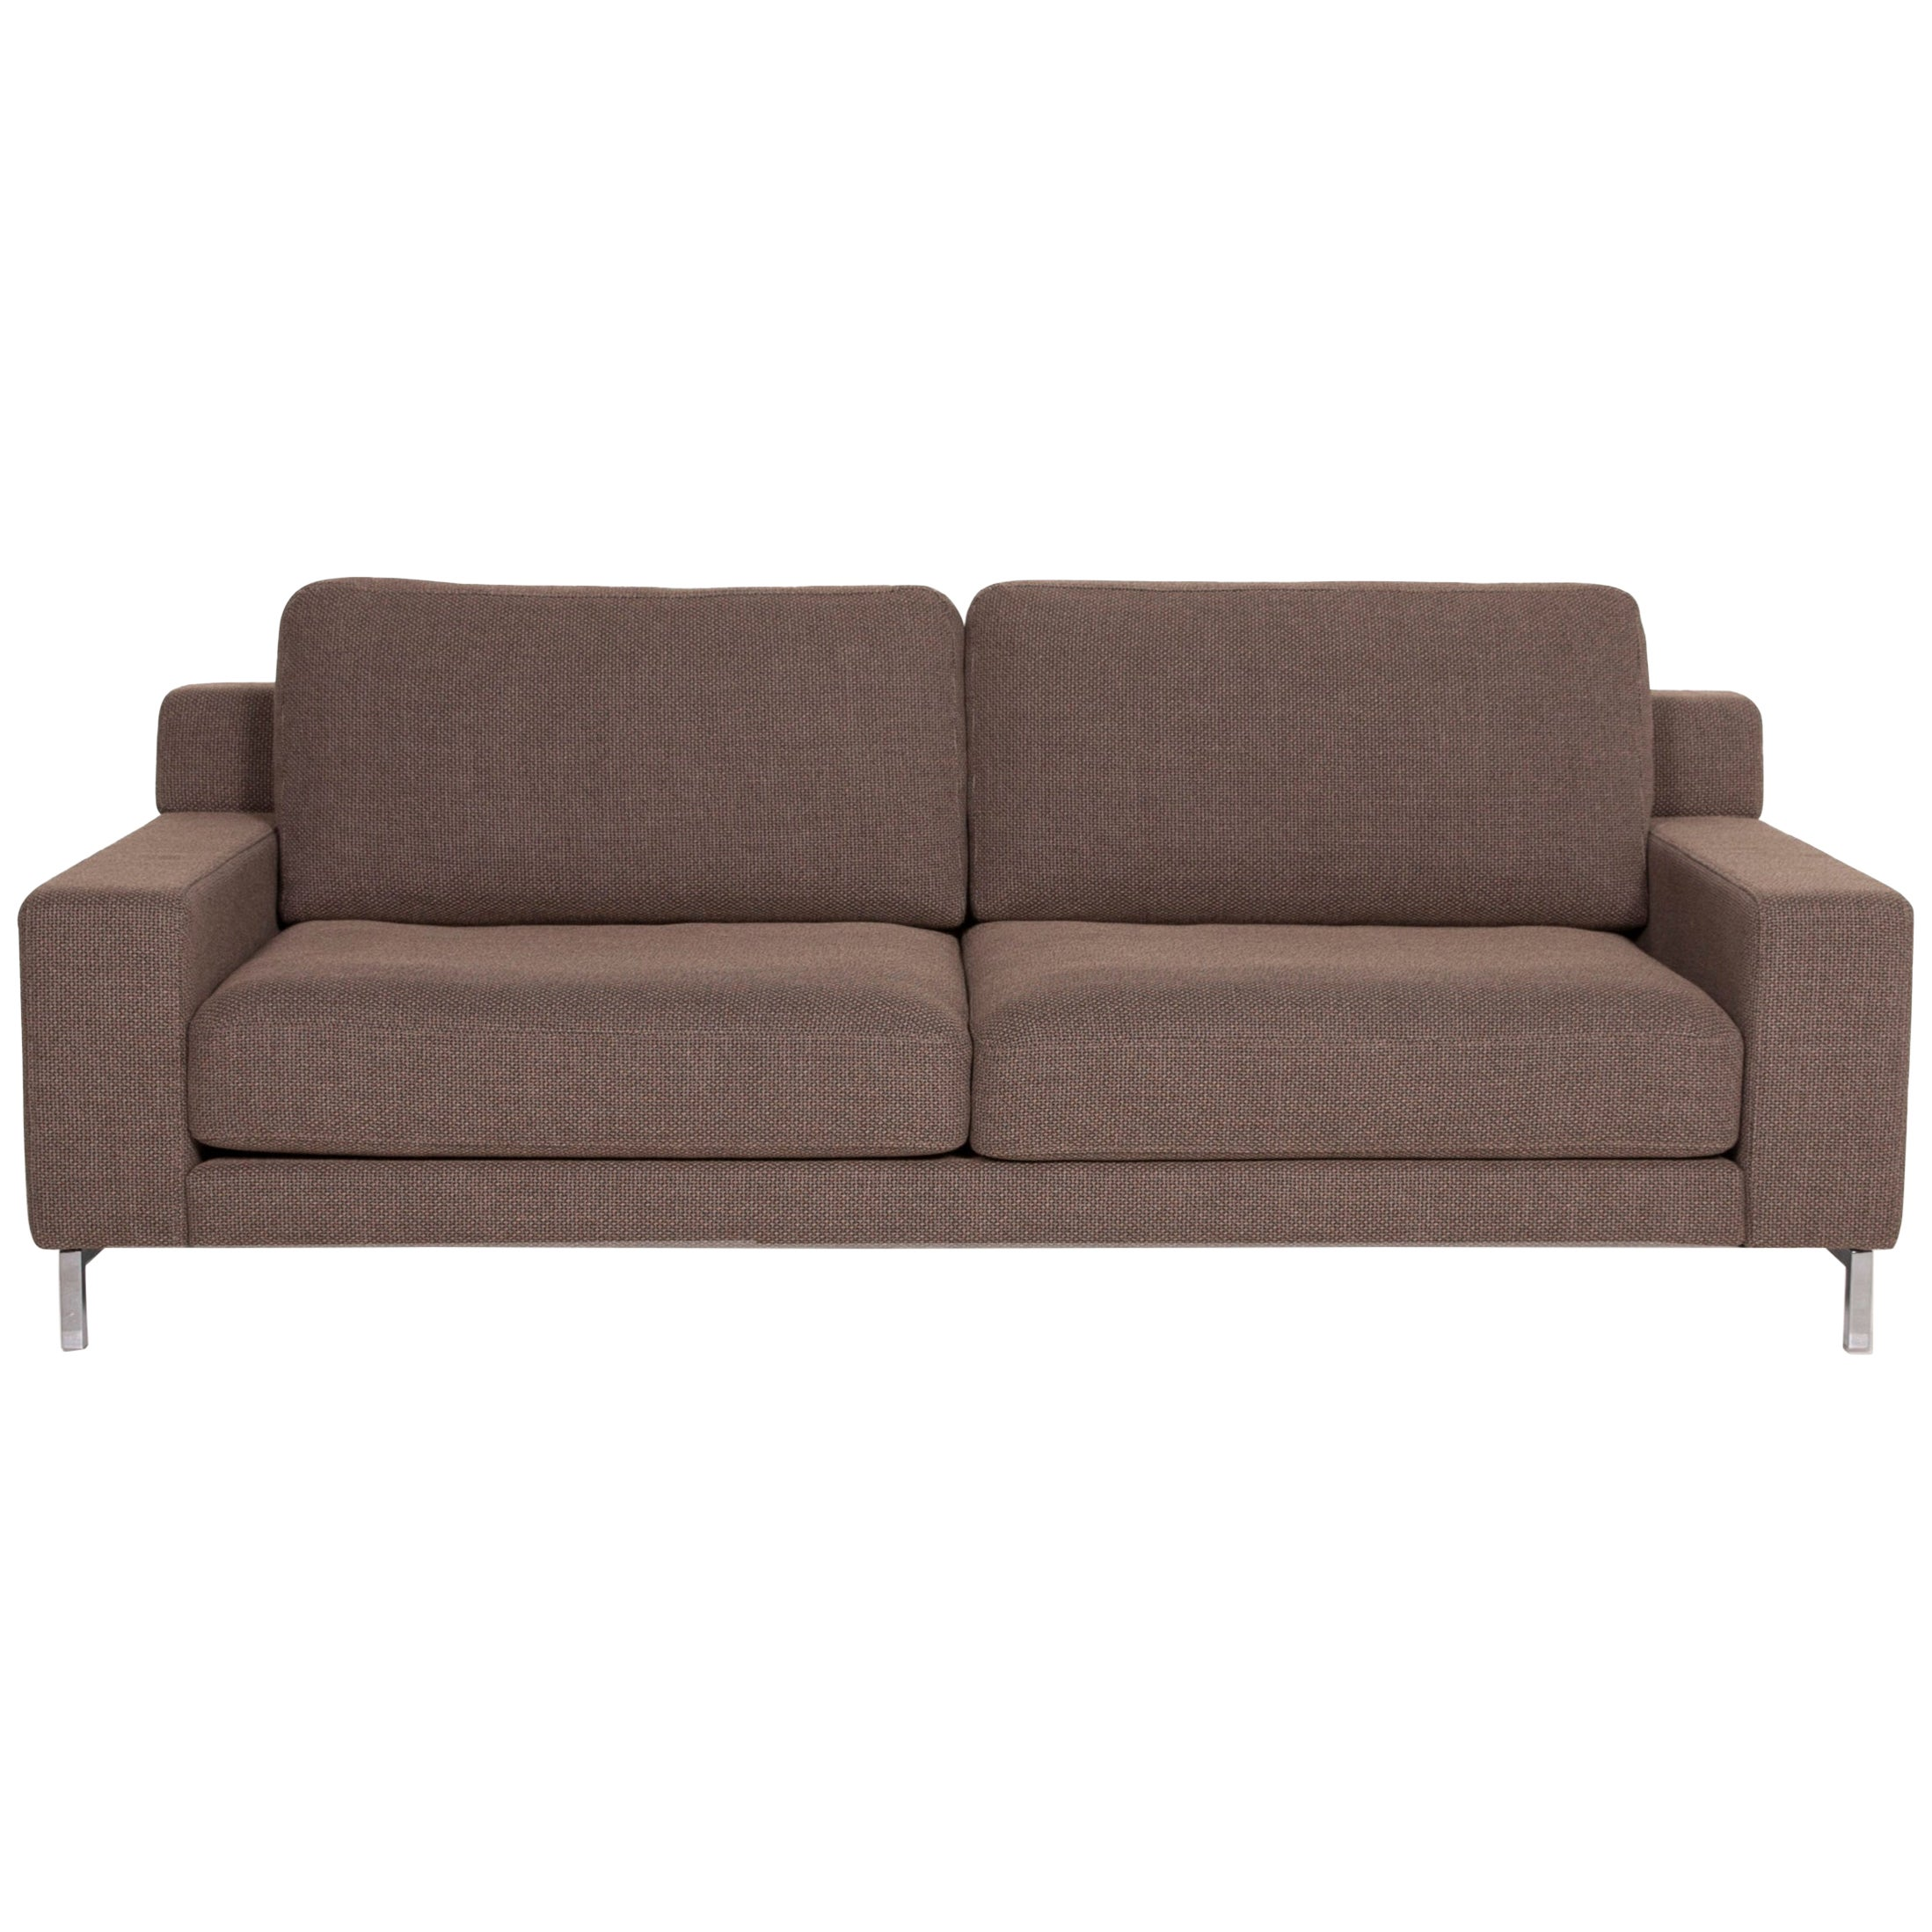 Rolf Benz Ego Fabric Sofa Brown Two-Seater